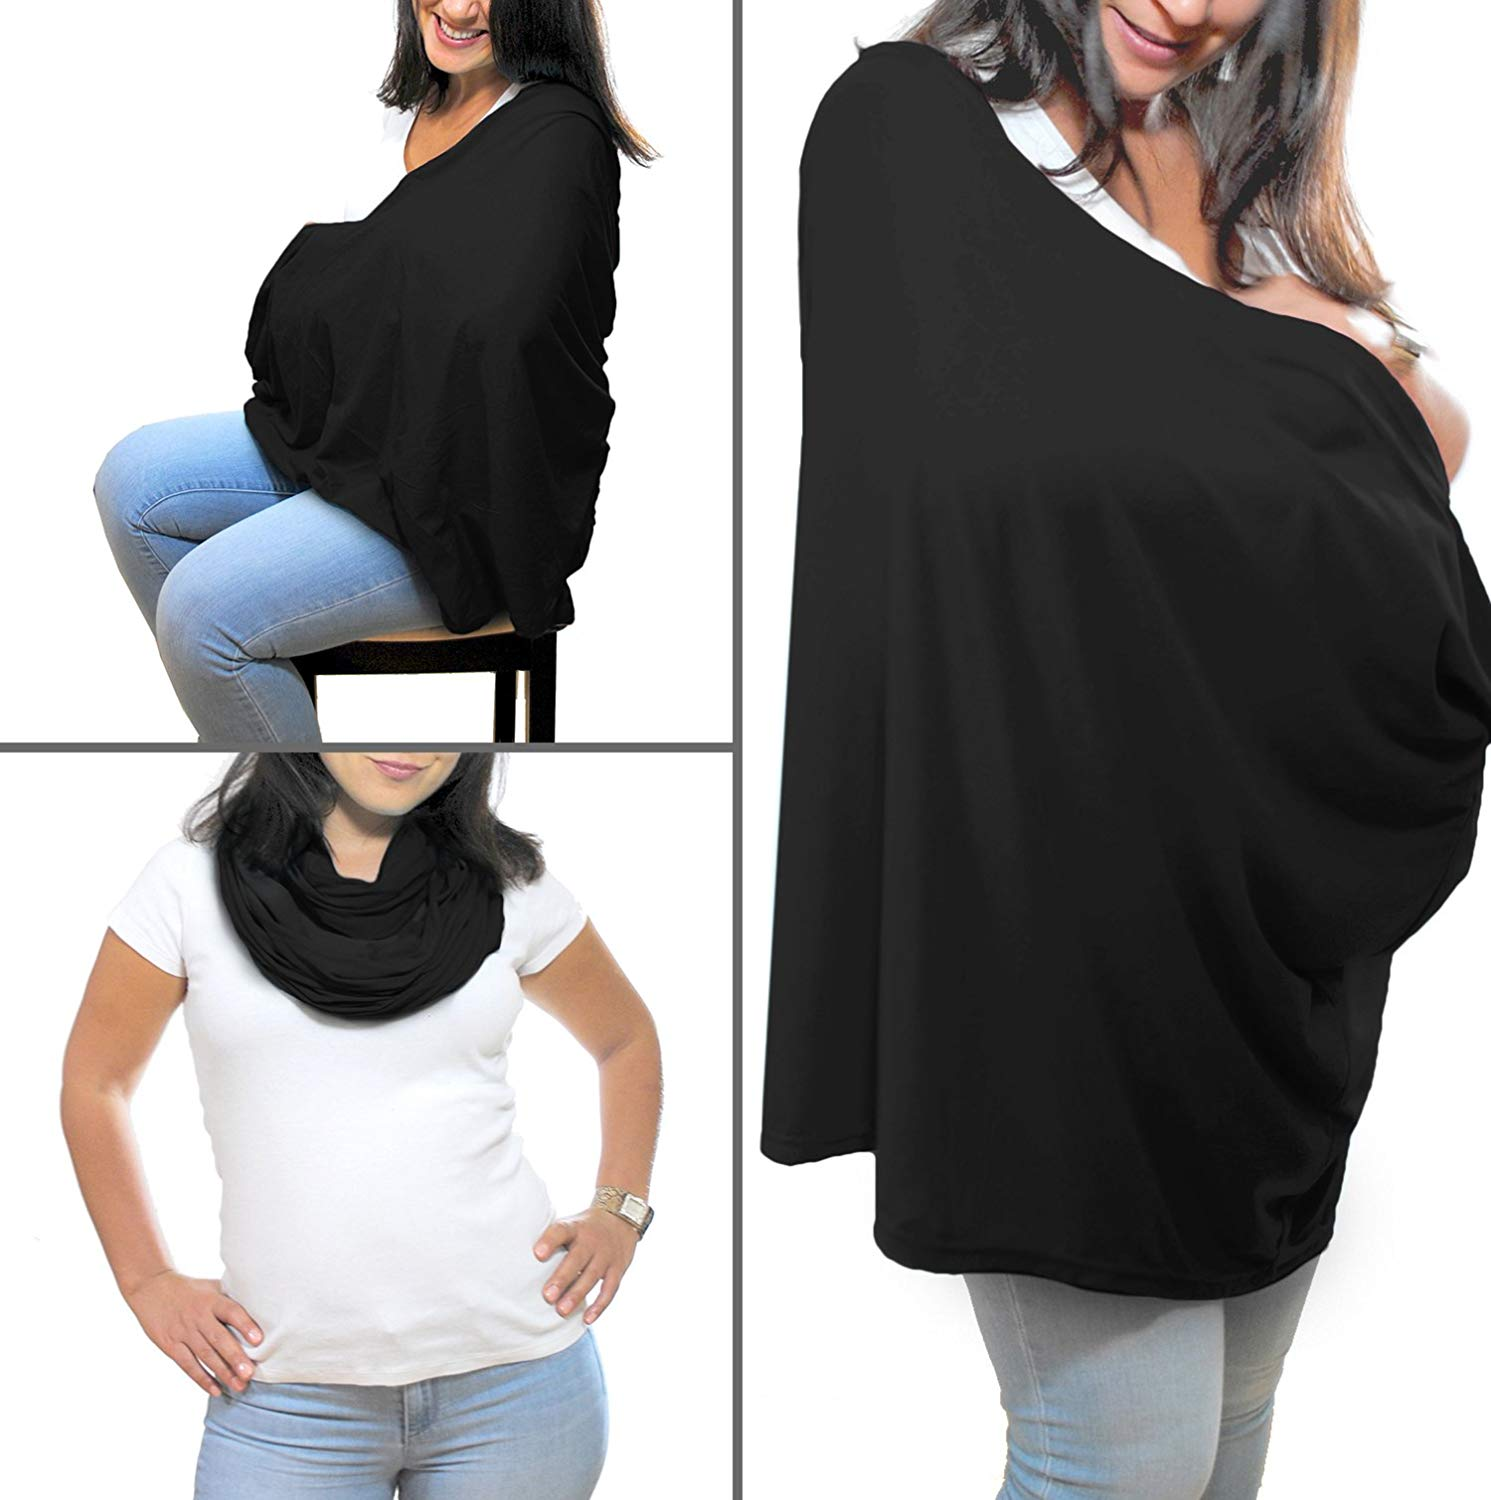 Magicfly Multifunction Infinity Nursing Cover,Nursing Scarf for Breastfeeding and Baby Caring,Stroller Cover&Baby Car Seat Canopy(5 Colors)